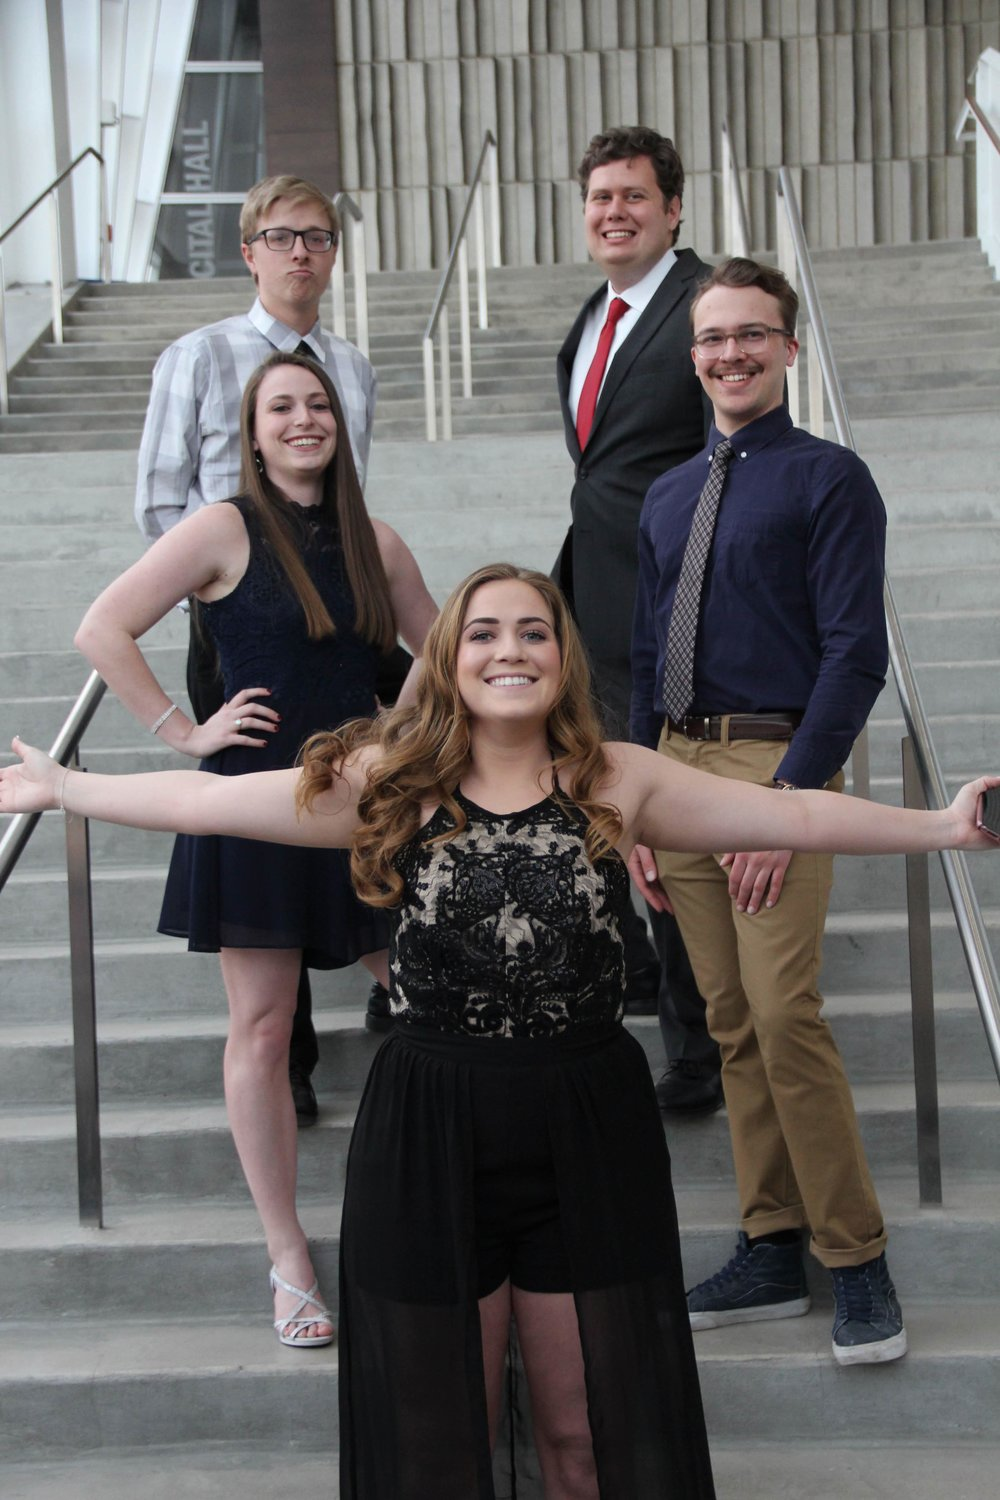 Our Current and Past Master Alchemists - From left to right: Neal Patrick, Gabby Duncan, Ellyse Henkle, Jacob Locher, and Will Thomson